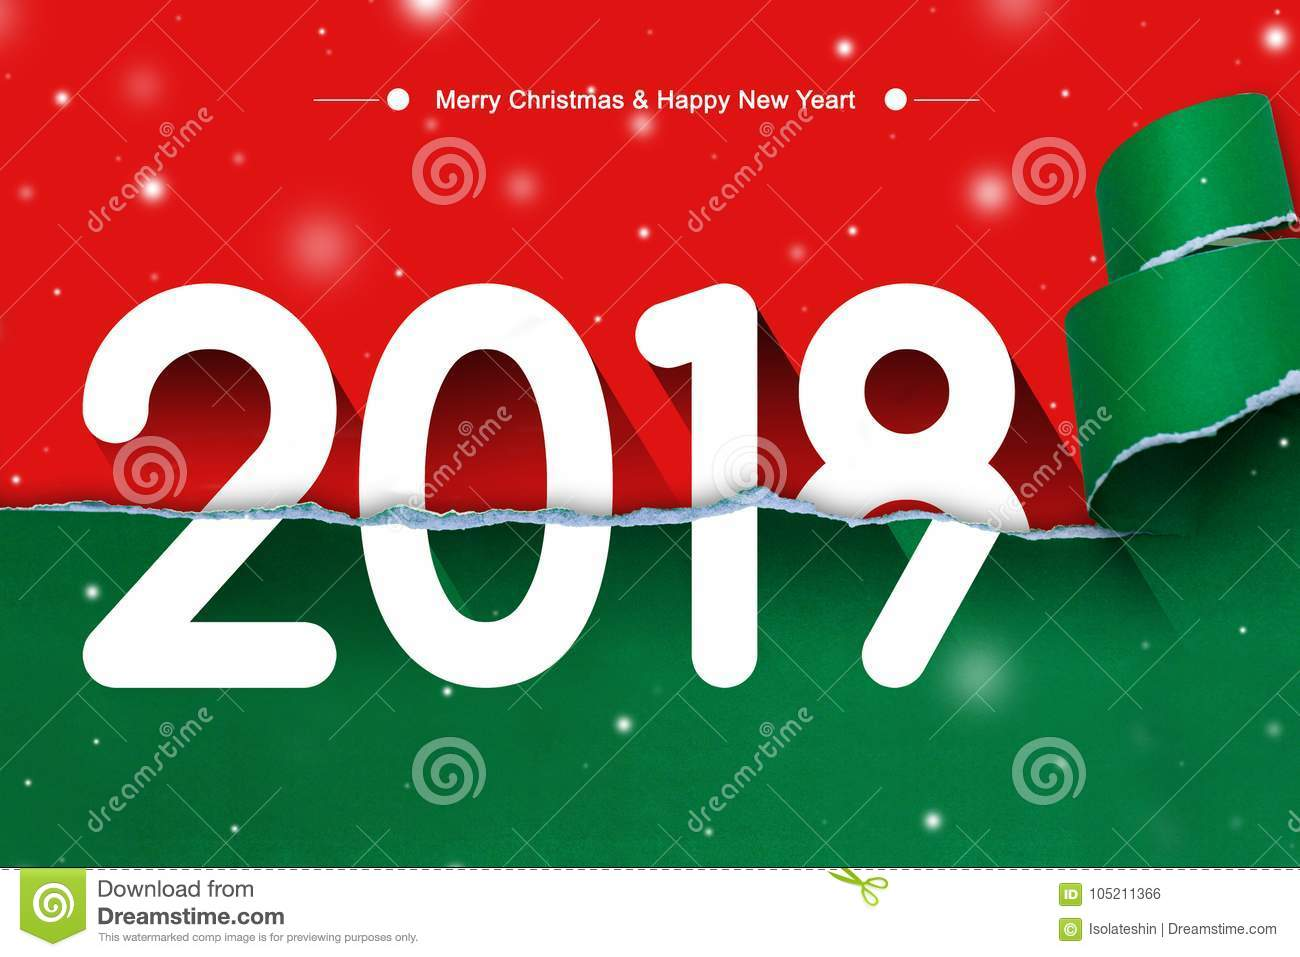 merry christmas and happy new year with 2018 on torn paper red and green background